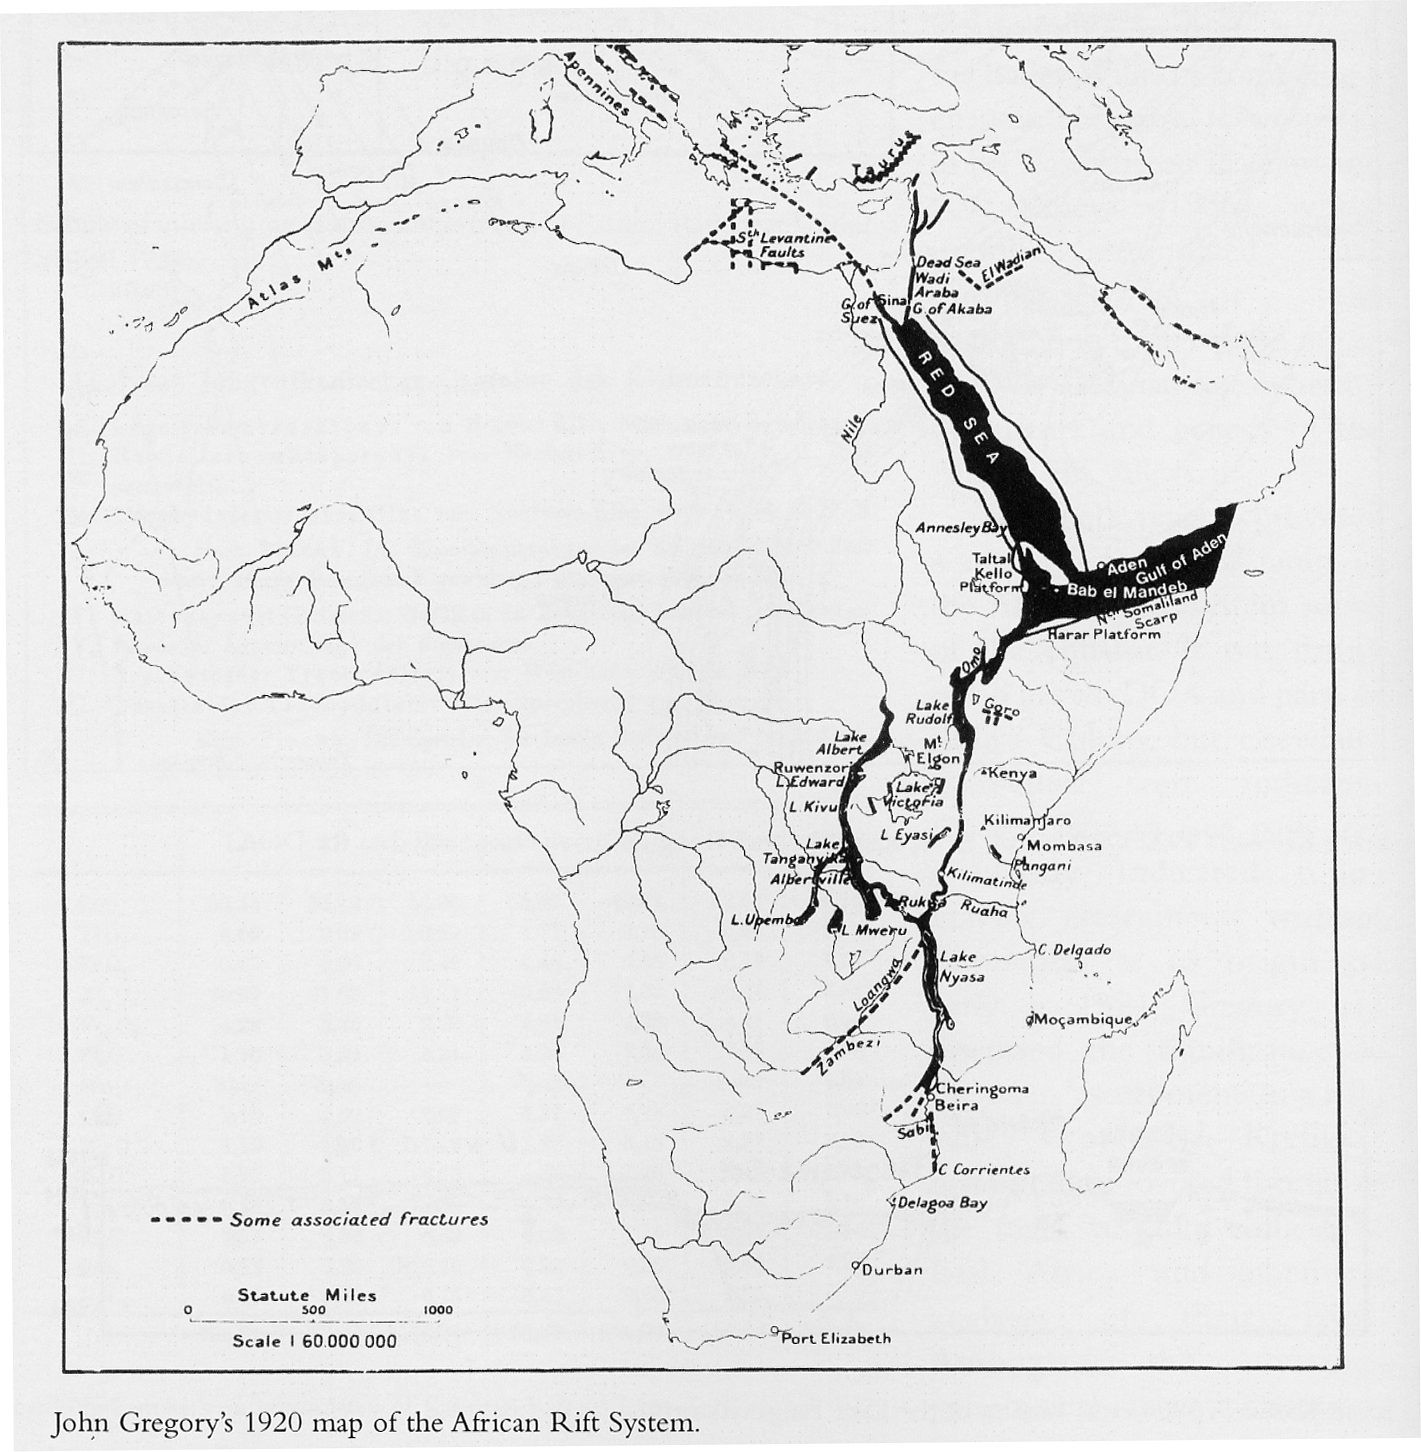 http://ethiopianrift.igg.cnr.it/data/HIST%20MAPS/Gregory_EARS_1920.jpg